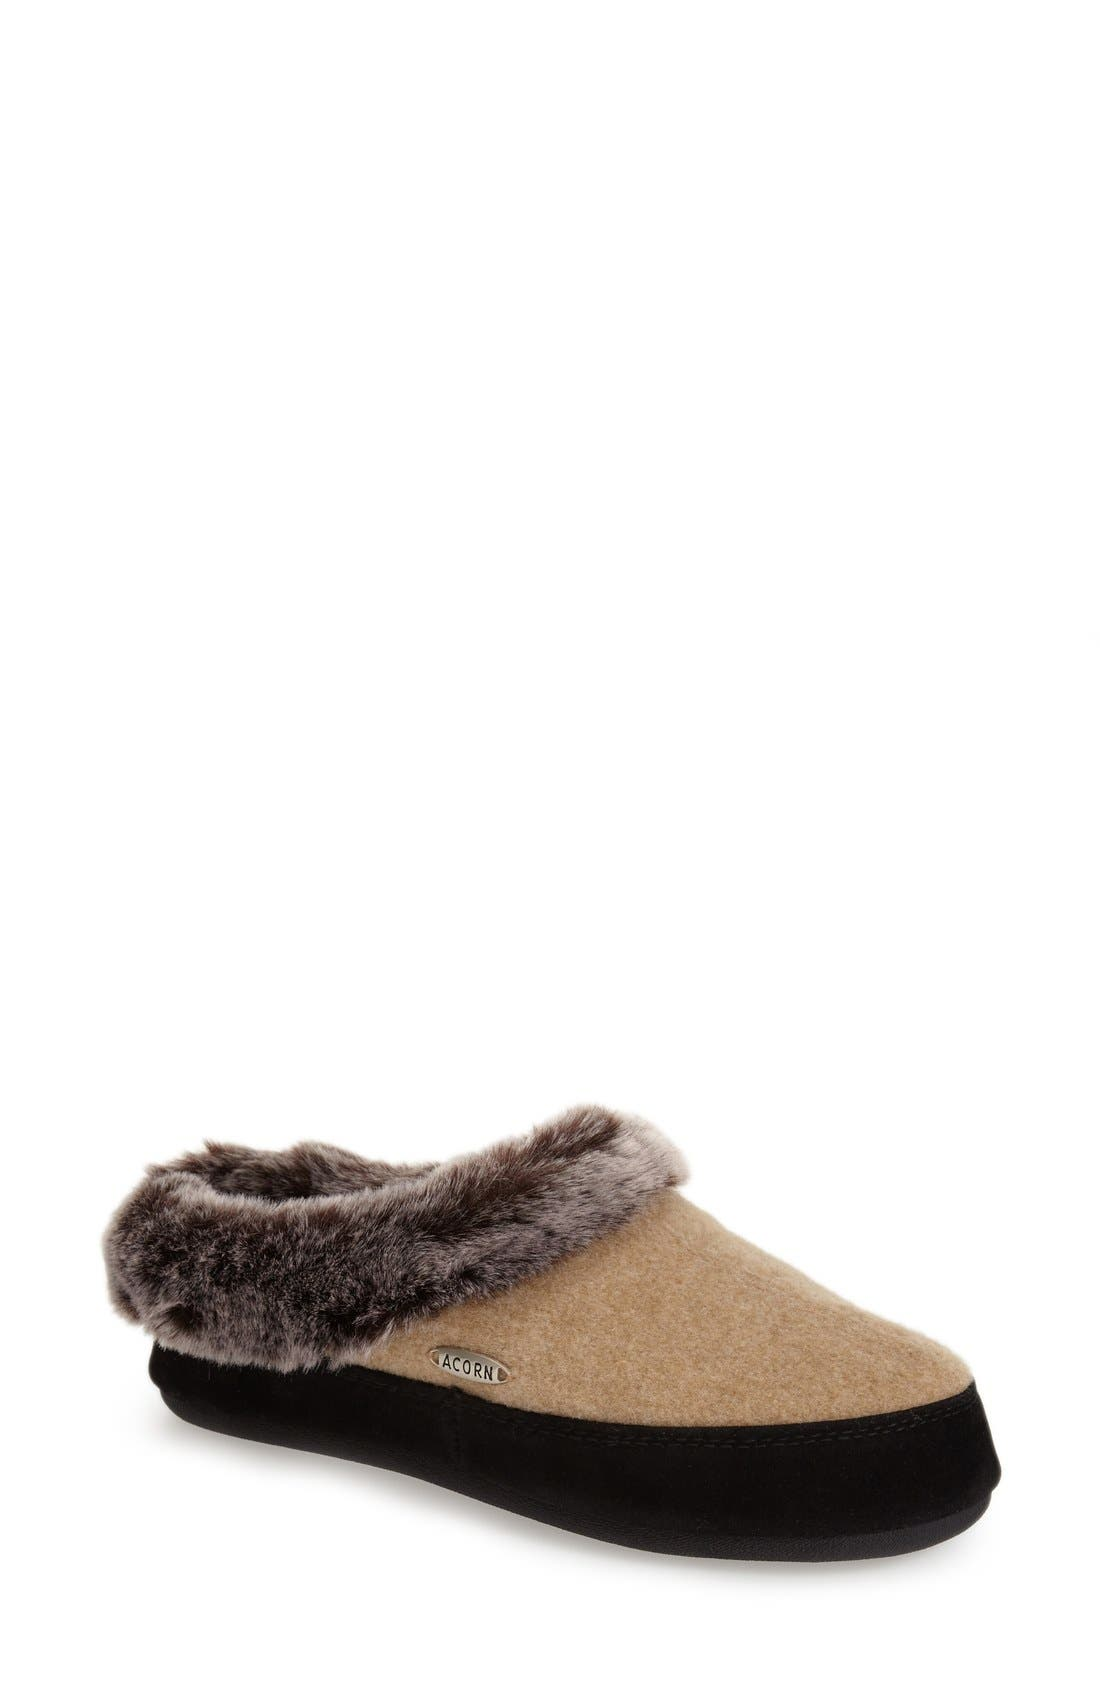 'Cloud Chilla Scuff' Slipper,                             Main thumbnail 3, color,